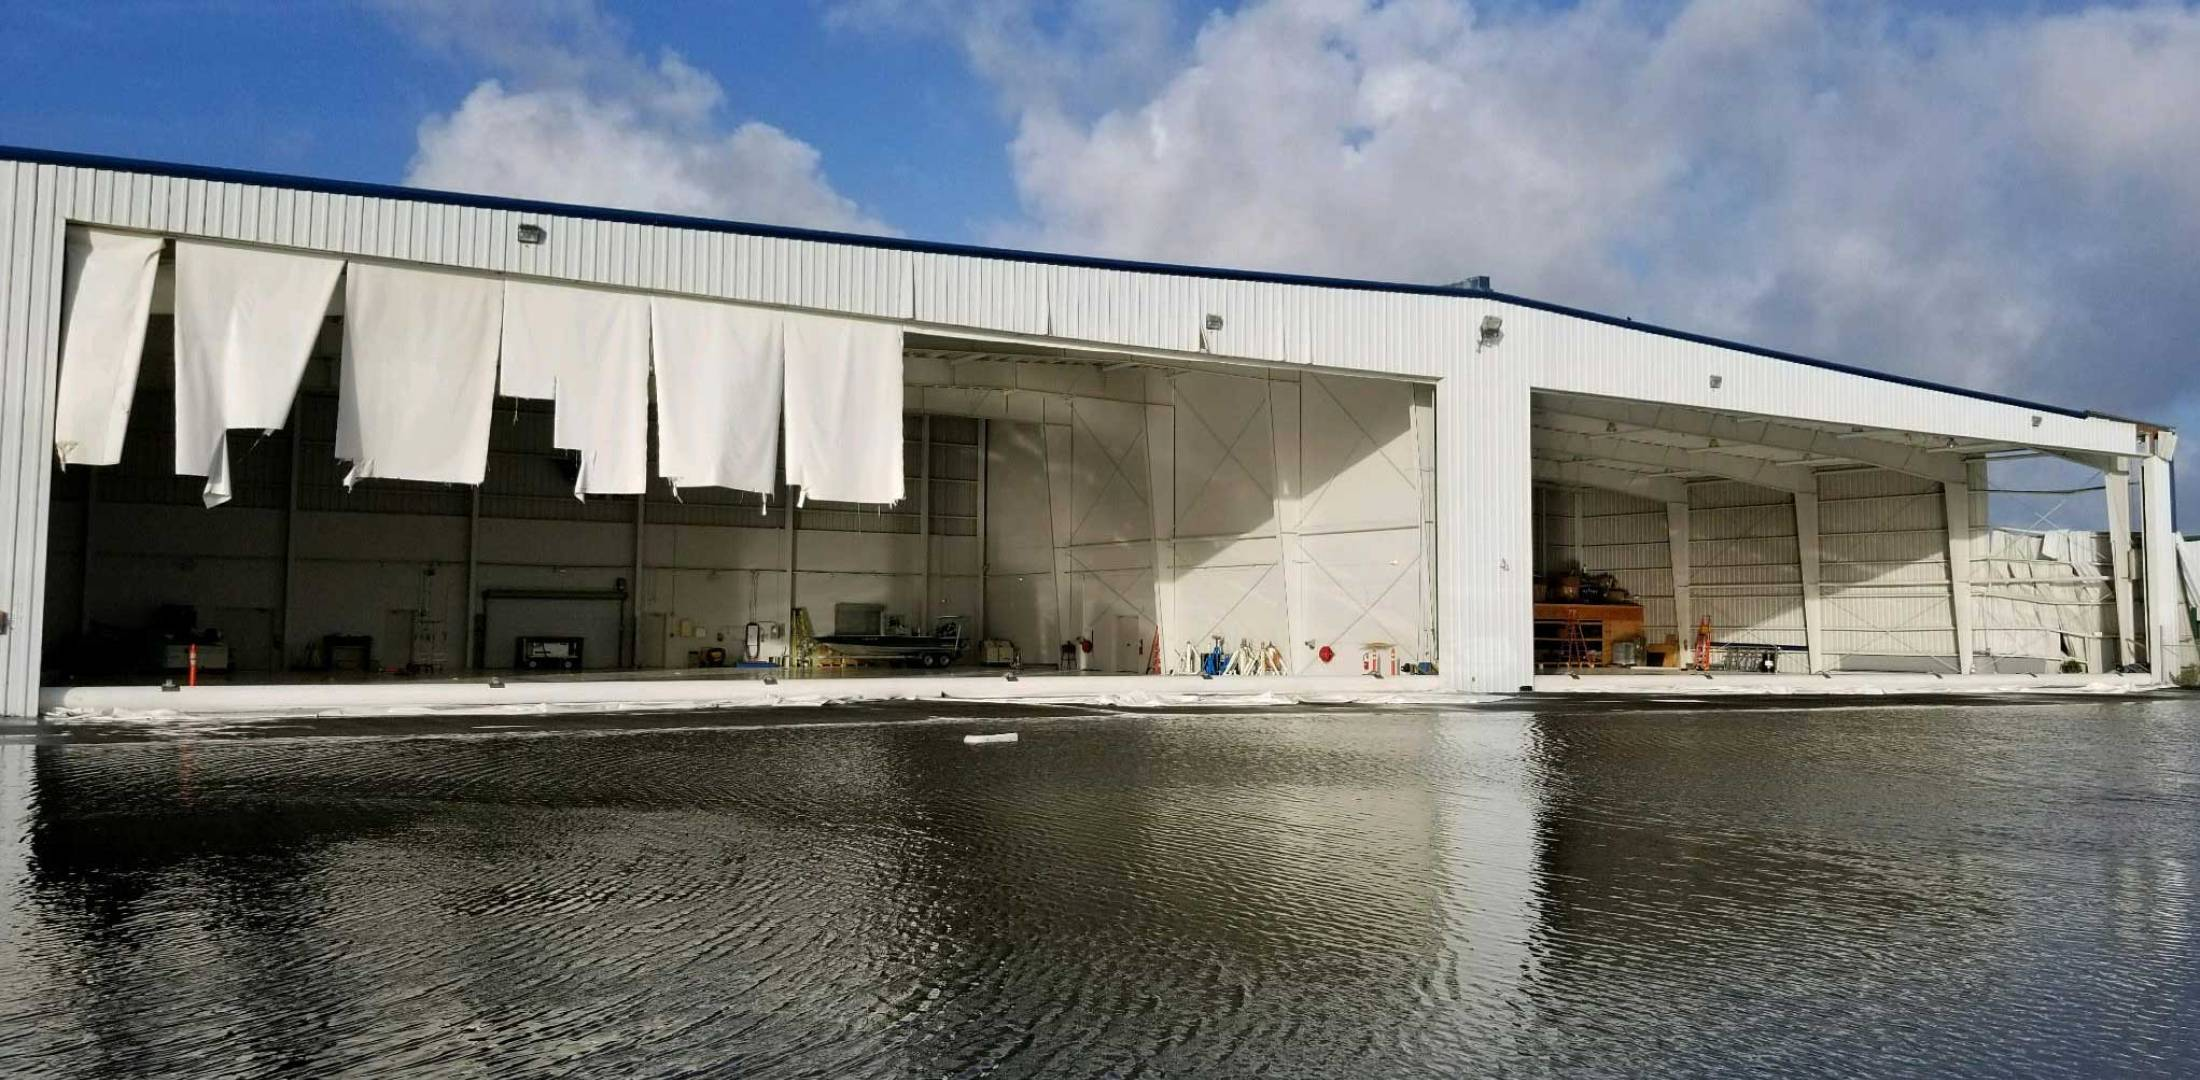 Hurricane Irma  For Most  It Could Have Been Much Worse   Business     Irma damaged hangars at Florida s Naples Municipal Airport